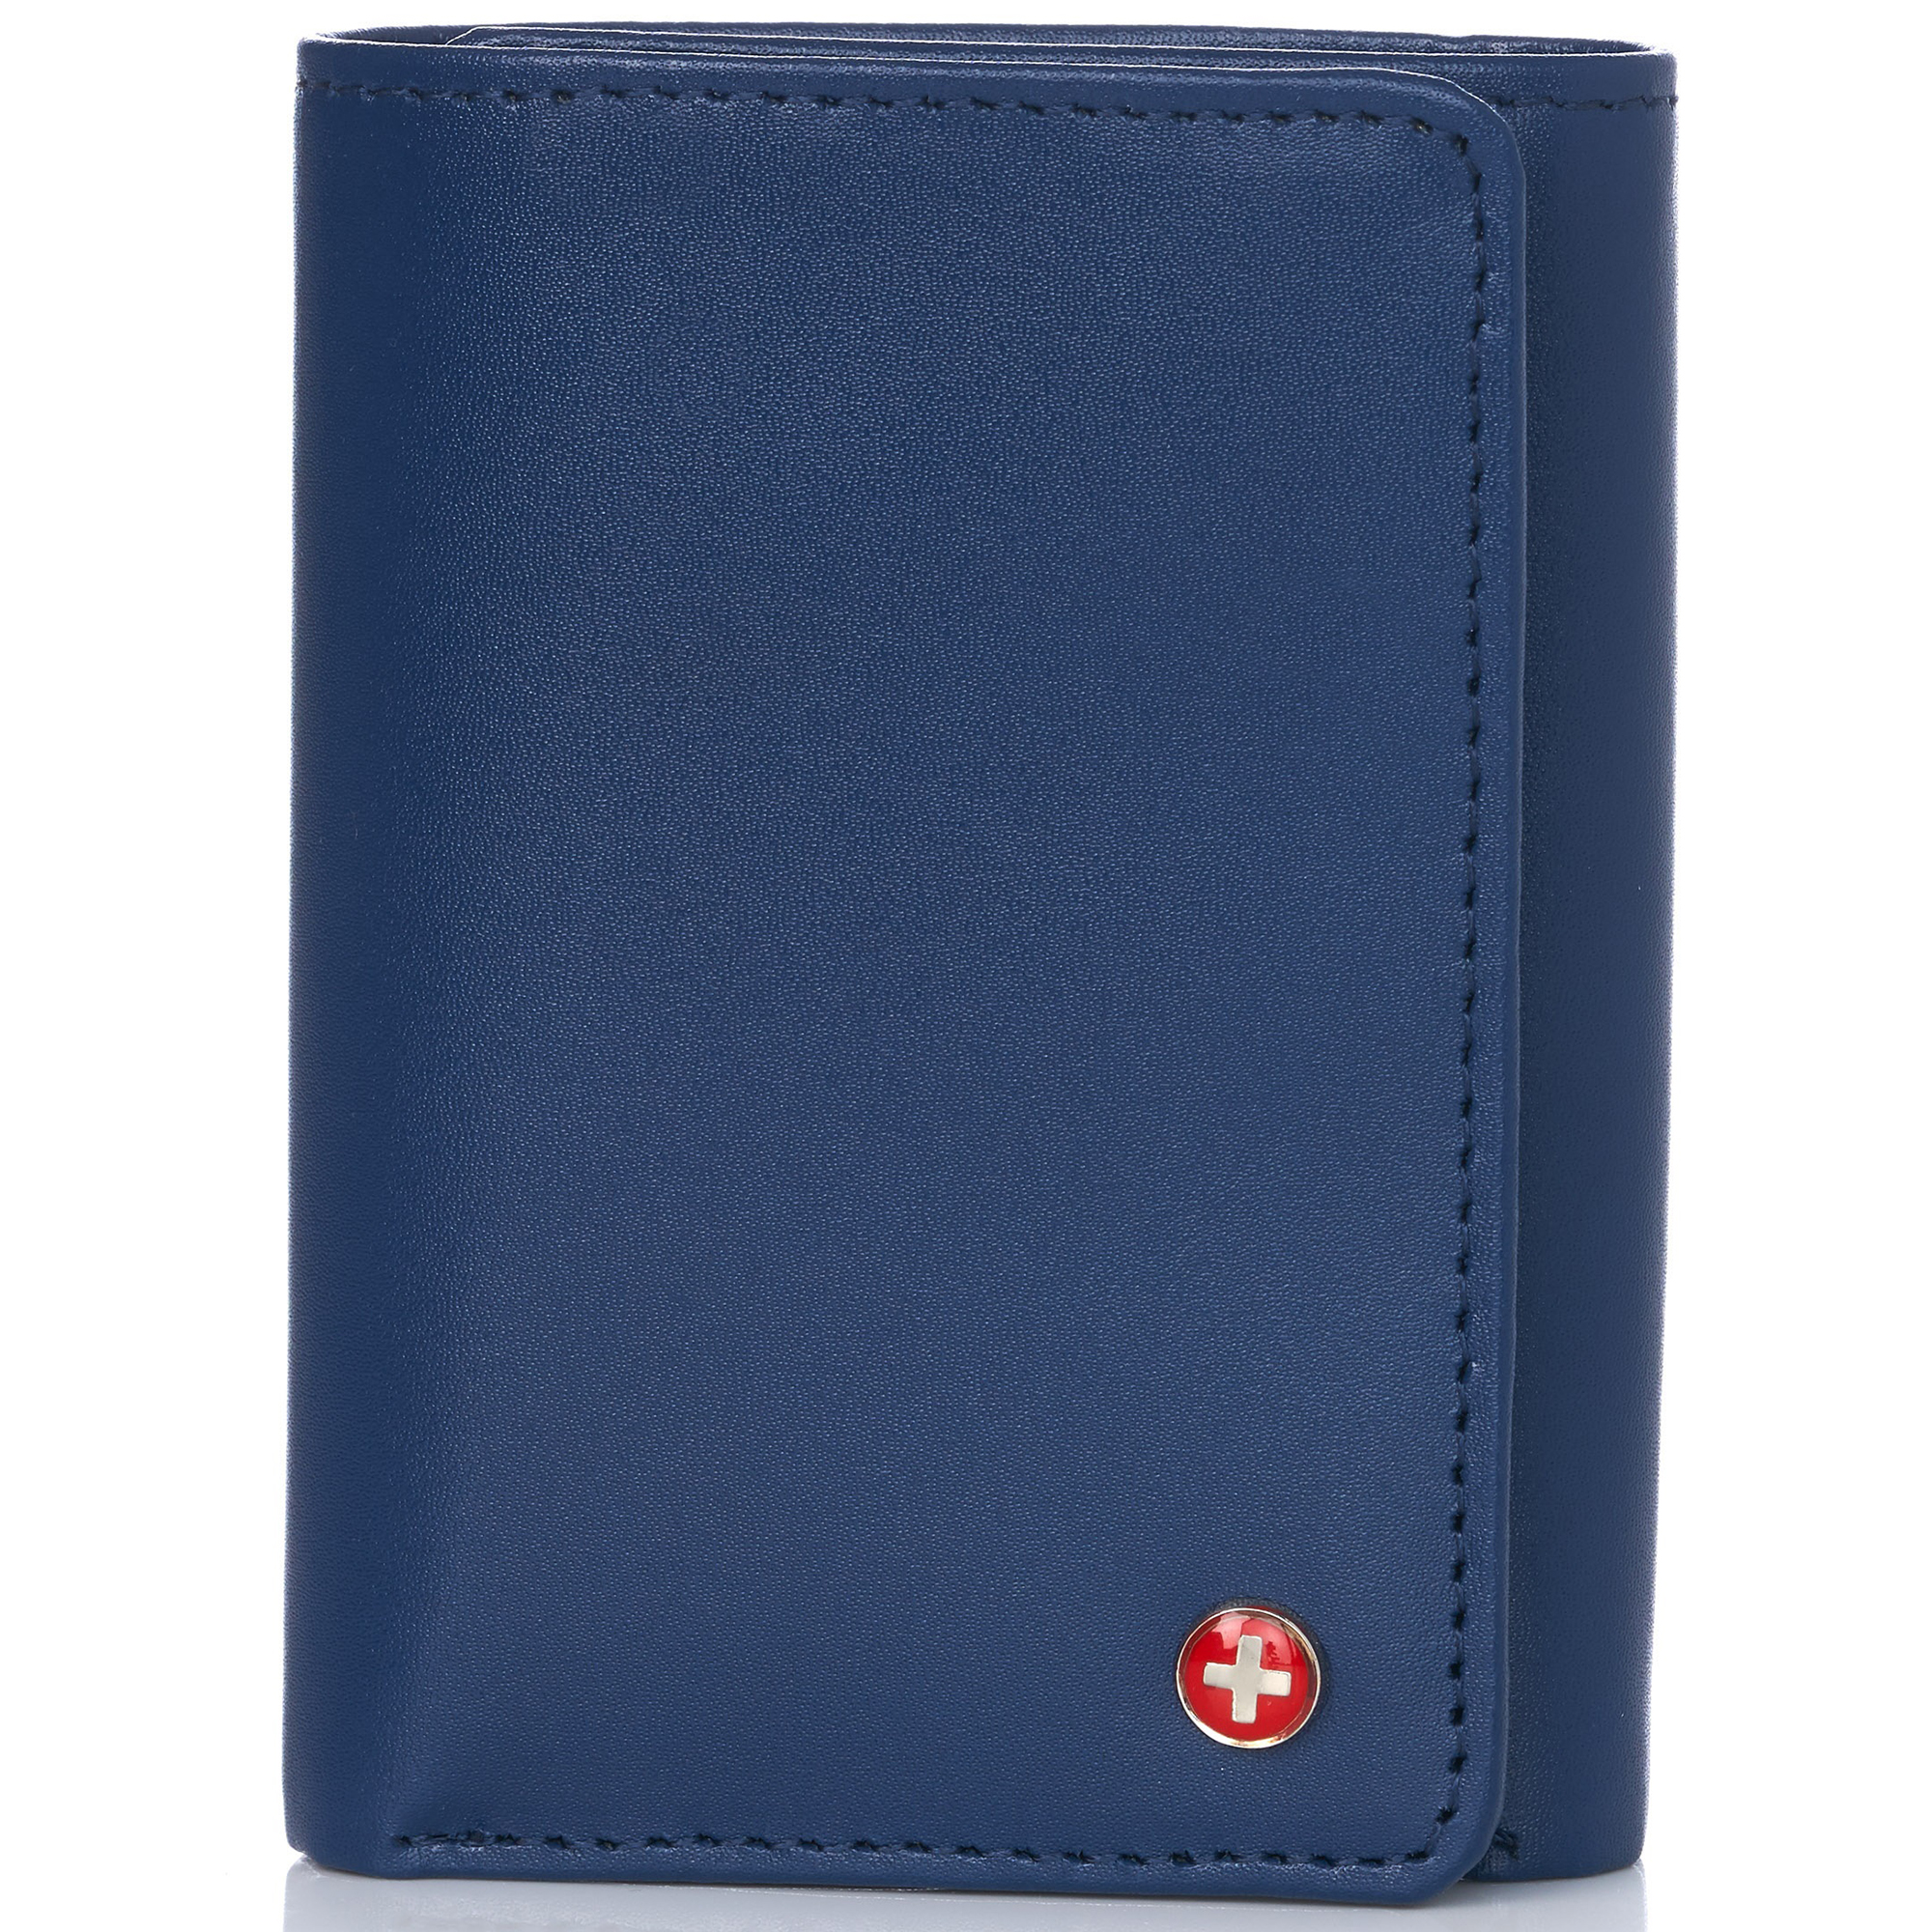 Alpine-Swiss-RFID-Mens-Wallet-Deluxe-Capacity-Trifold-With-Divided-Bill-Section thumbnail 56